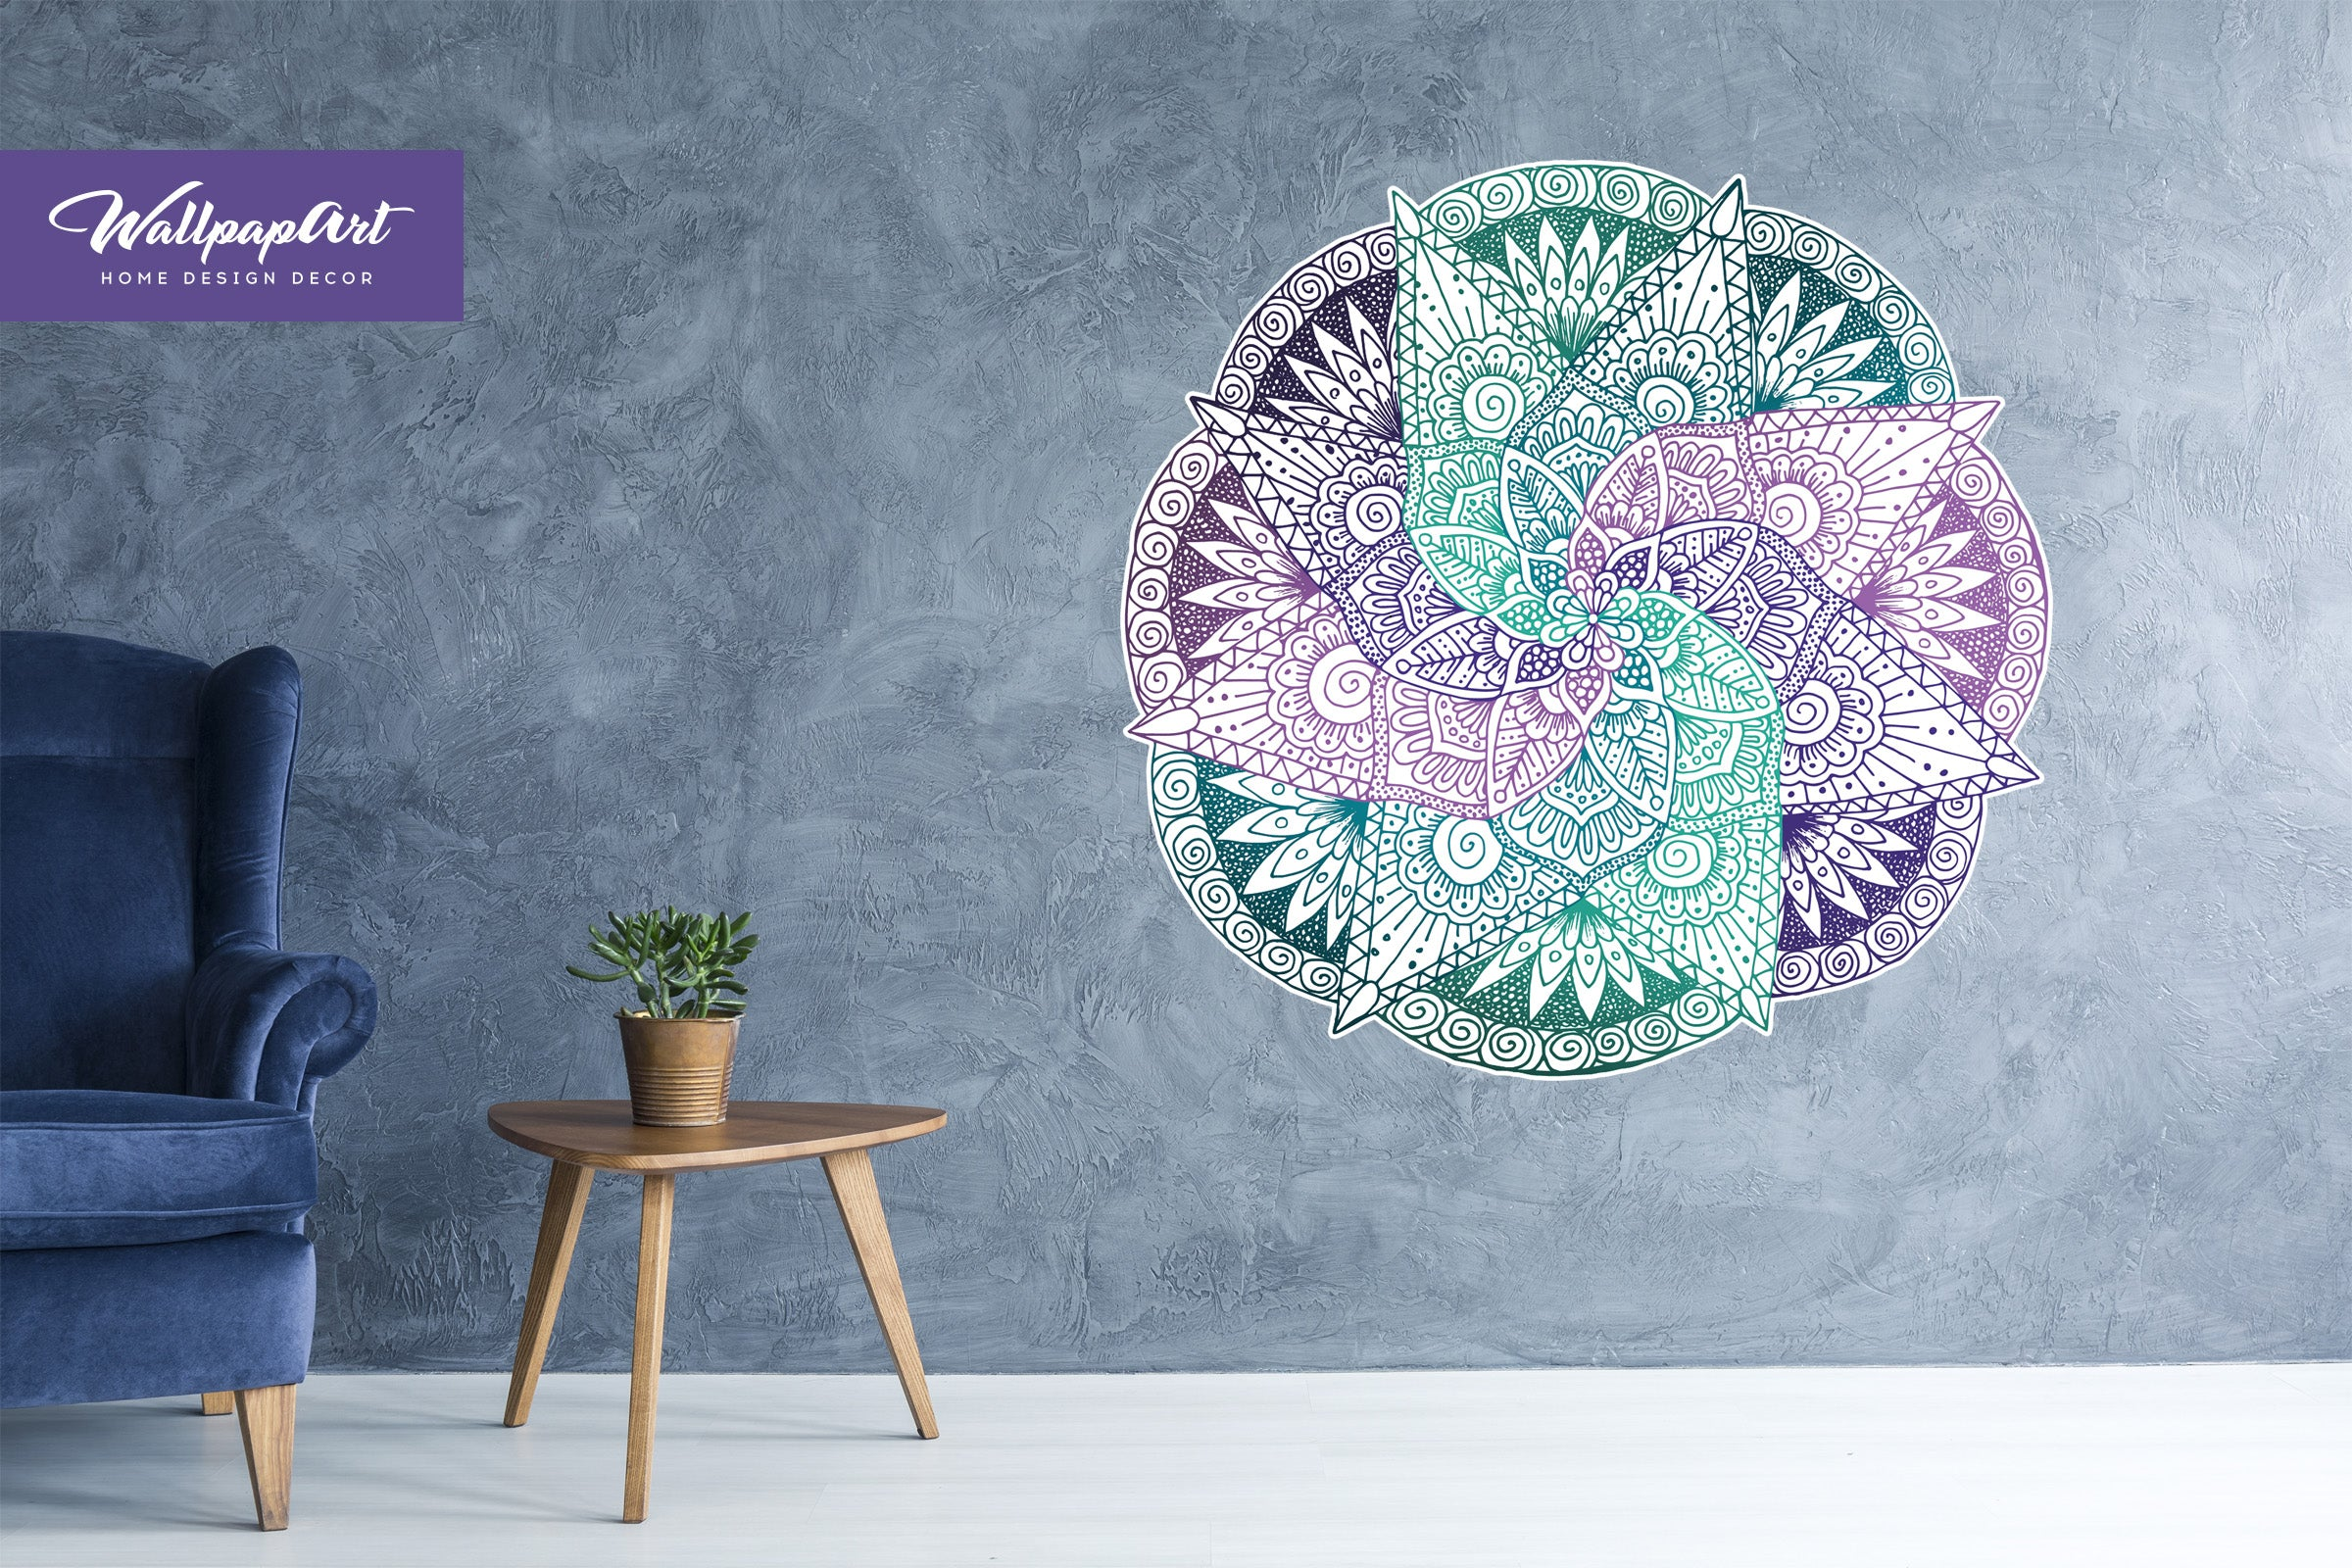 Light Spiral Mandala Wall Mural Self Adhesive Wall Decal Removable